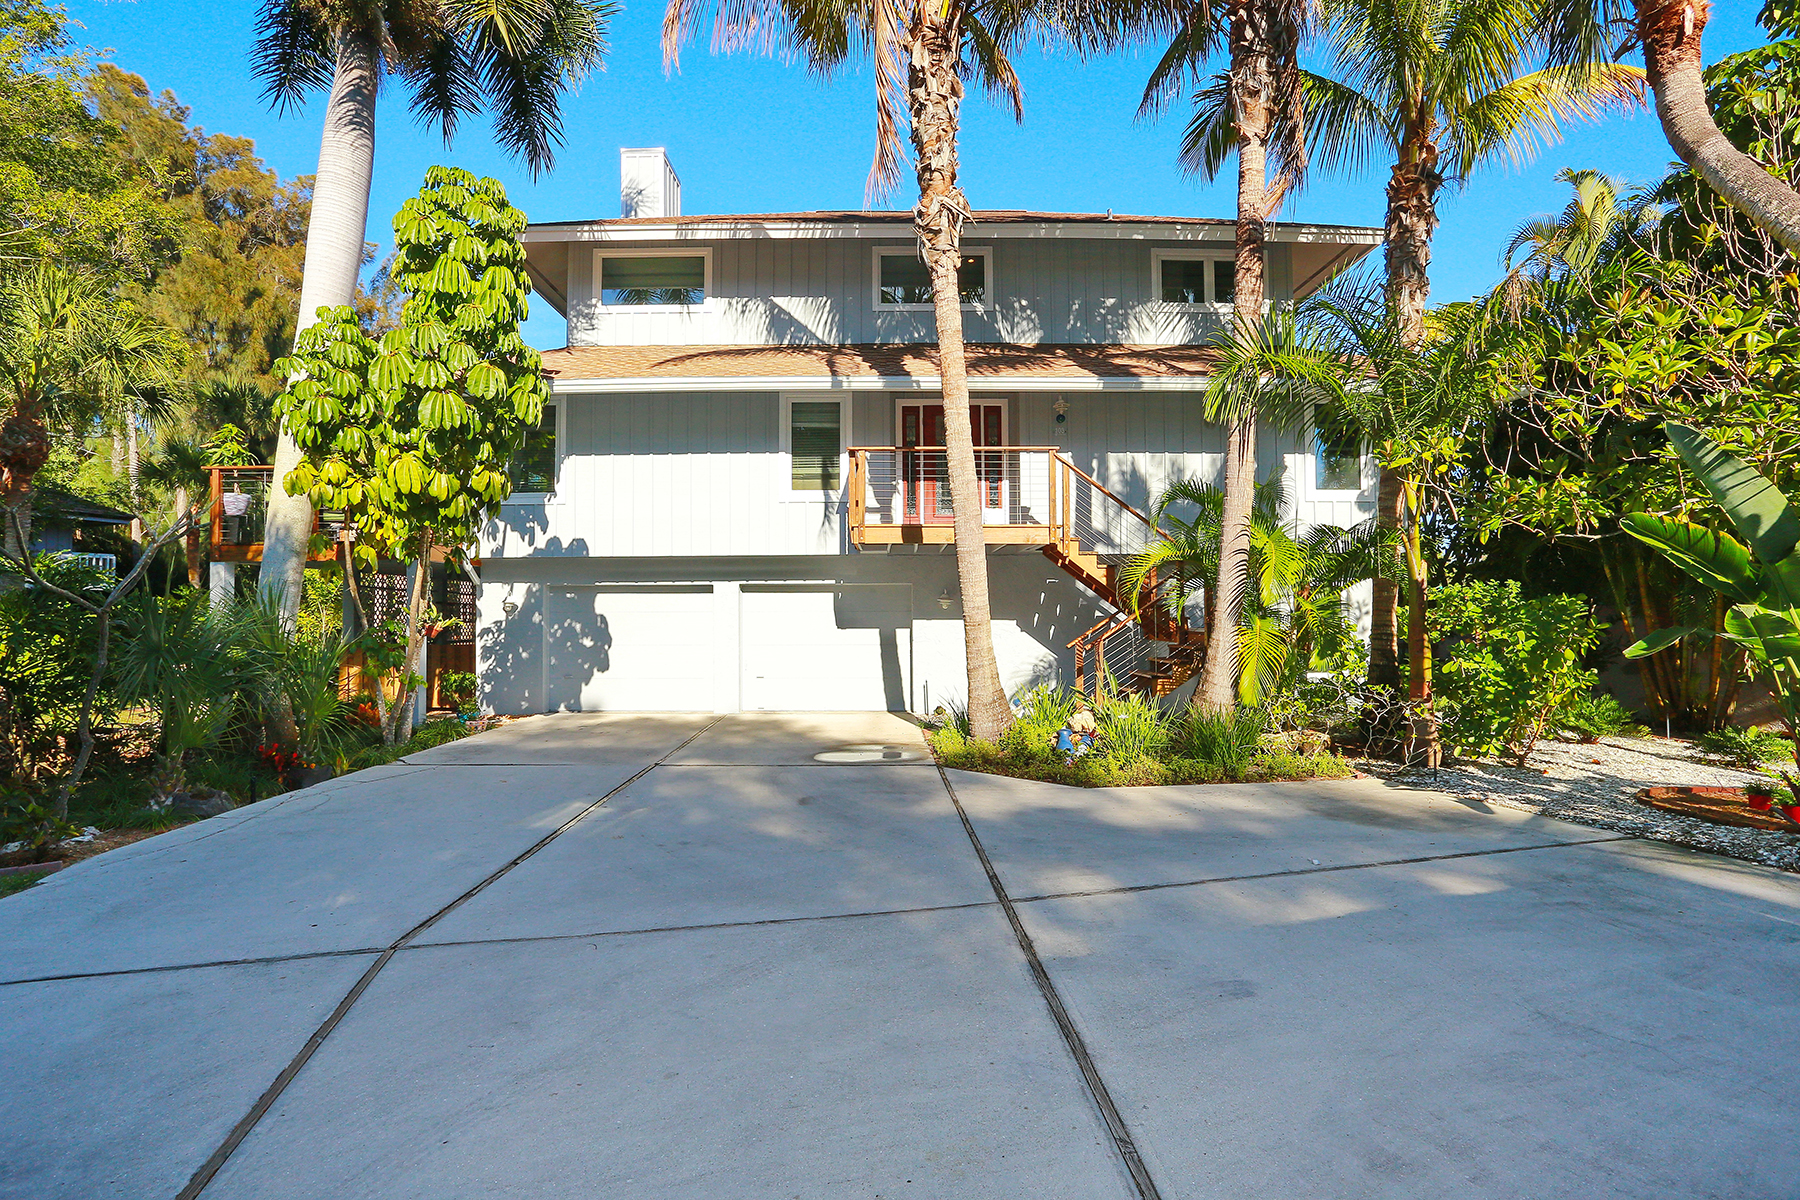 Single Family Home for Sale at SIESTA KEY 103 Sand Dollar Ln Sarasota, Florida 34242 United States